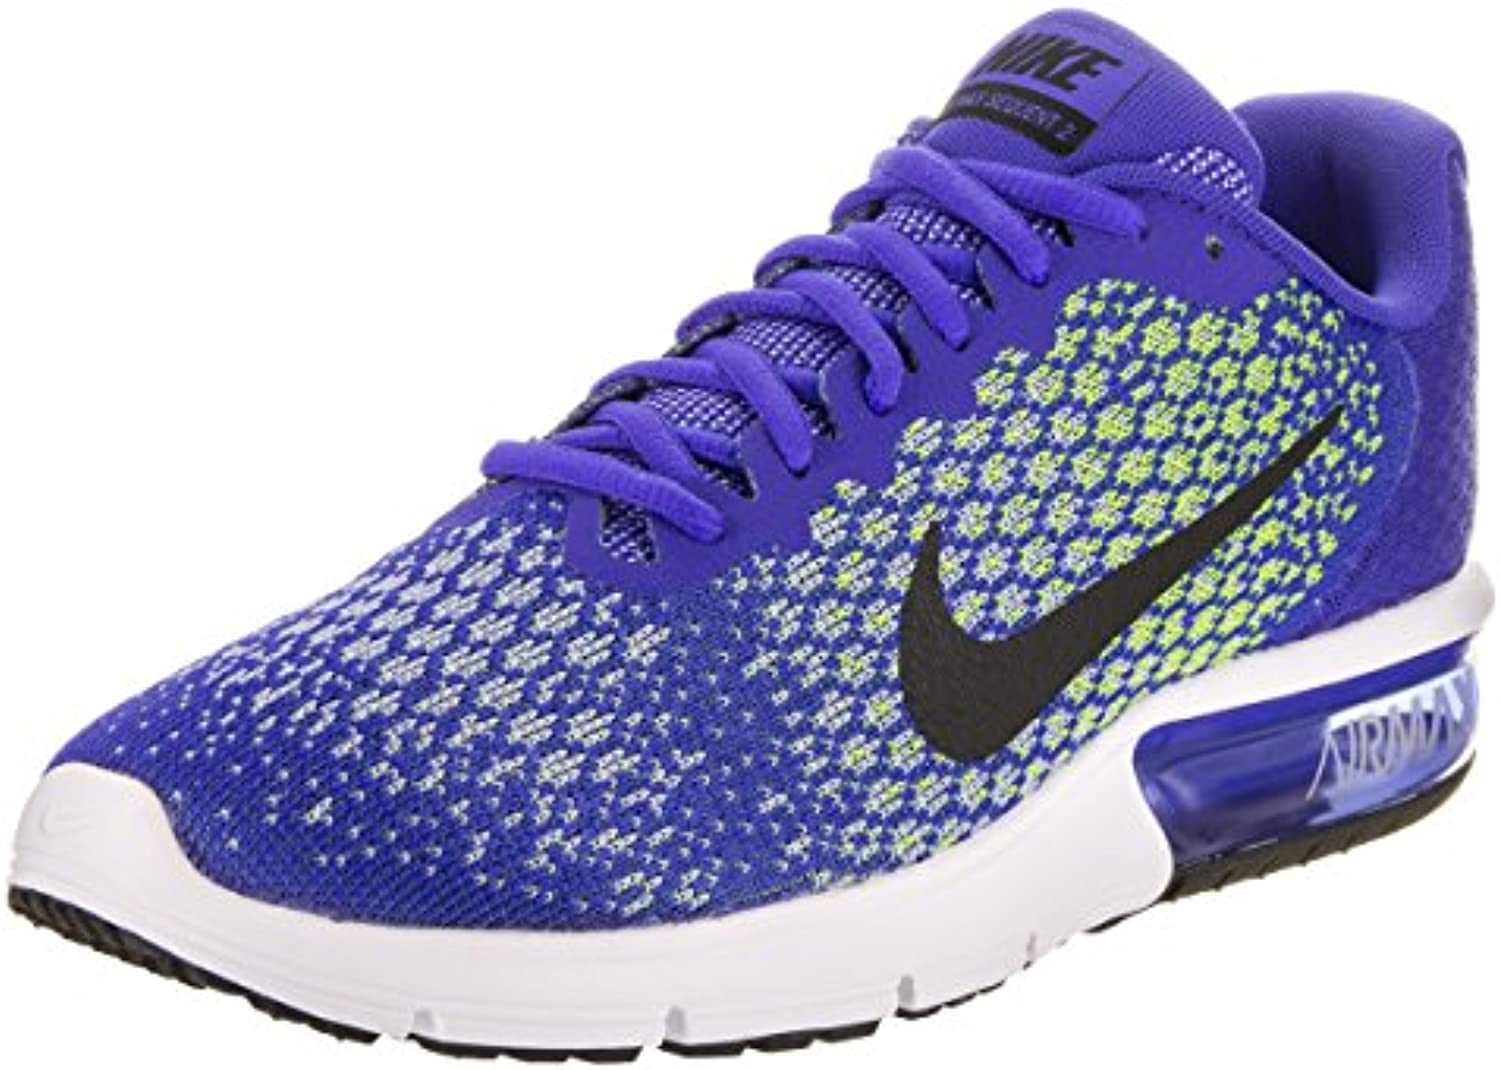 Nike - Air Max Sequent 2 - 852461401 - Color: Azul-Gris - Size: 46.0